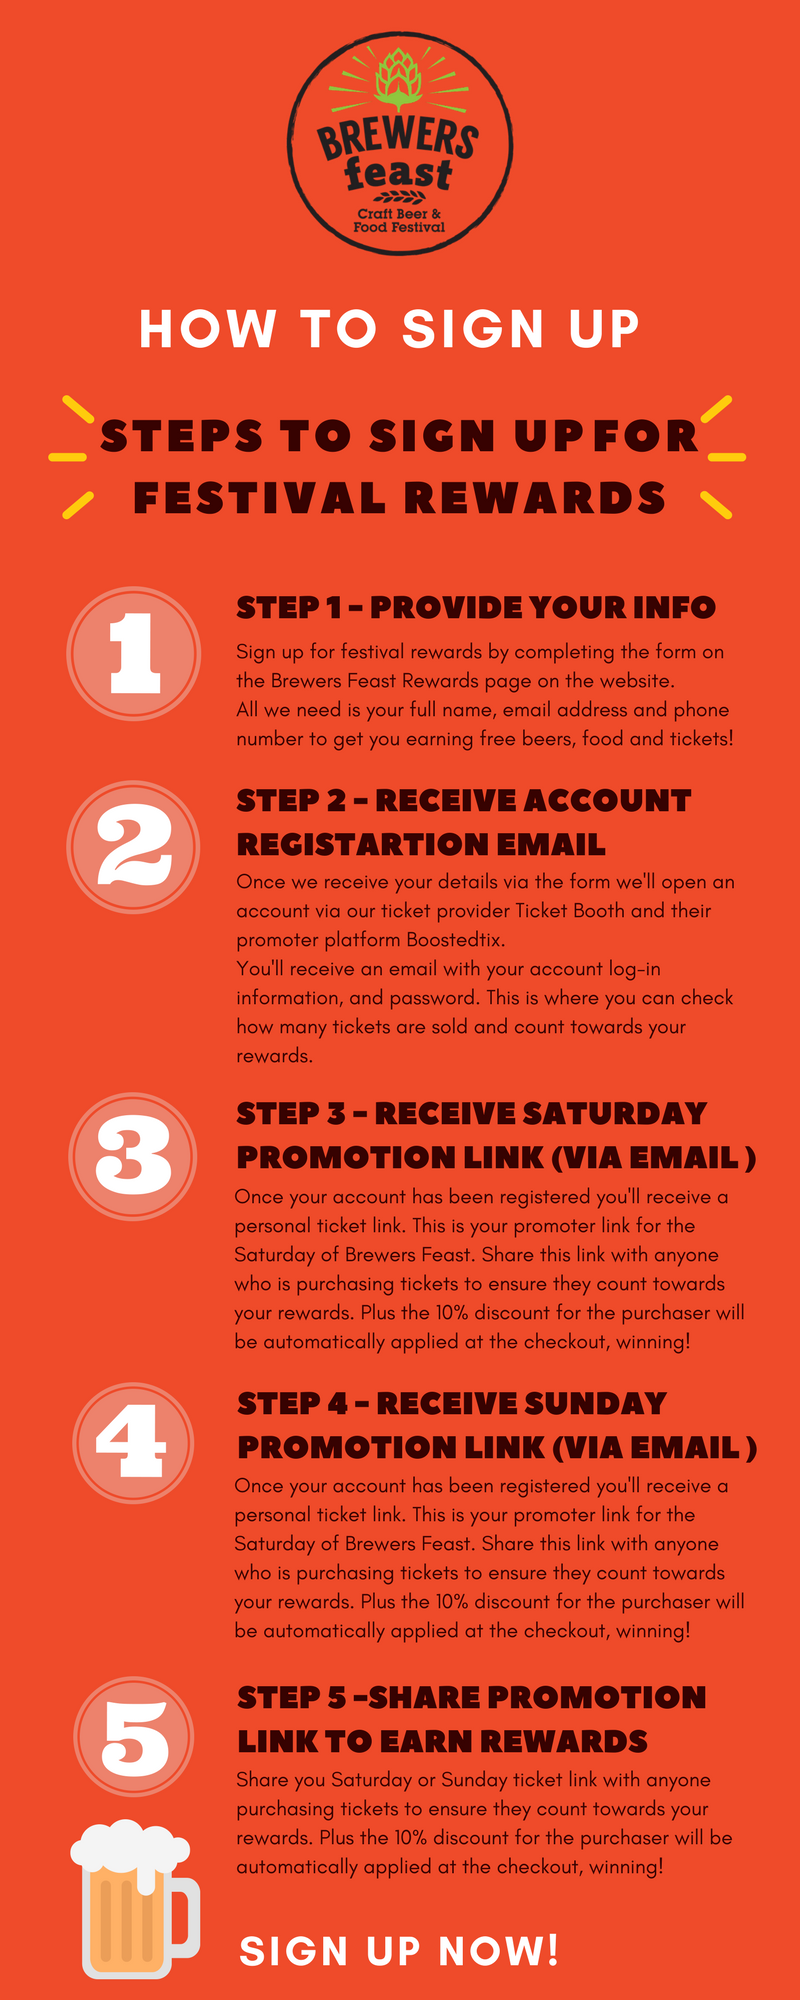 HOW TO SIGN UP Festival Rewards Graphic.png